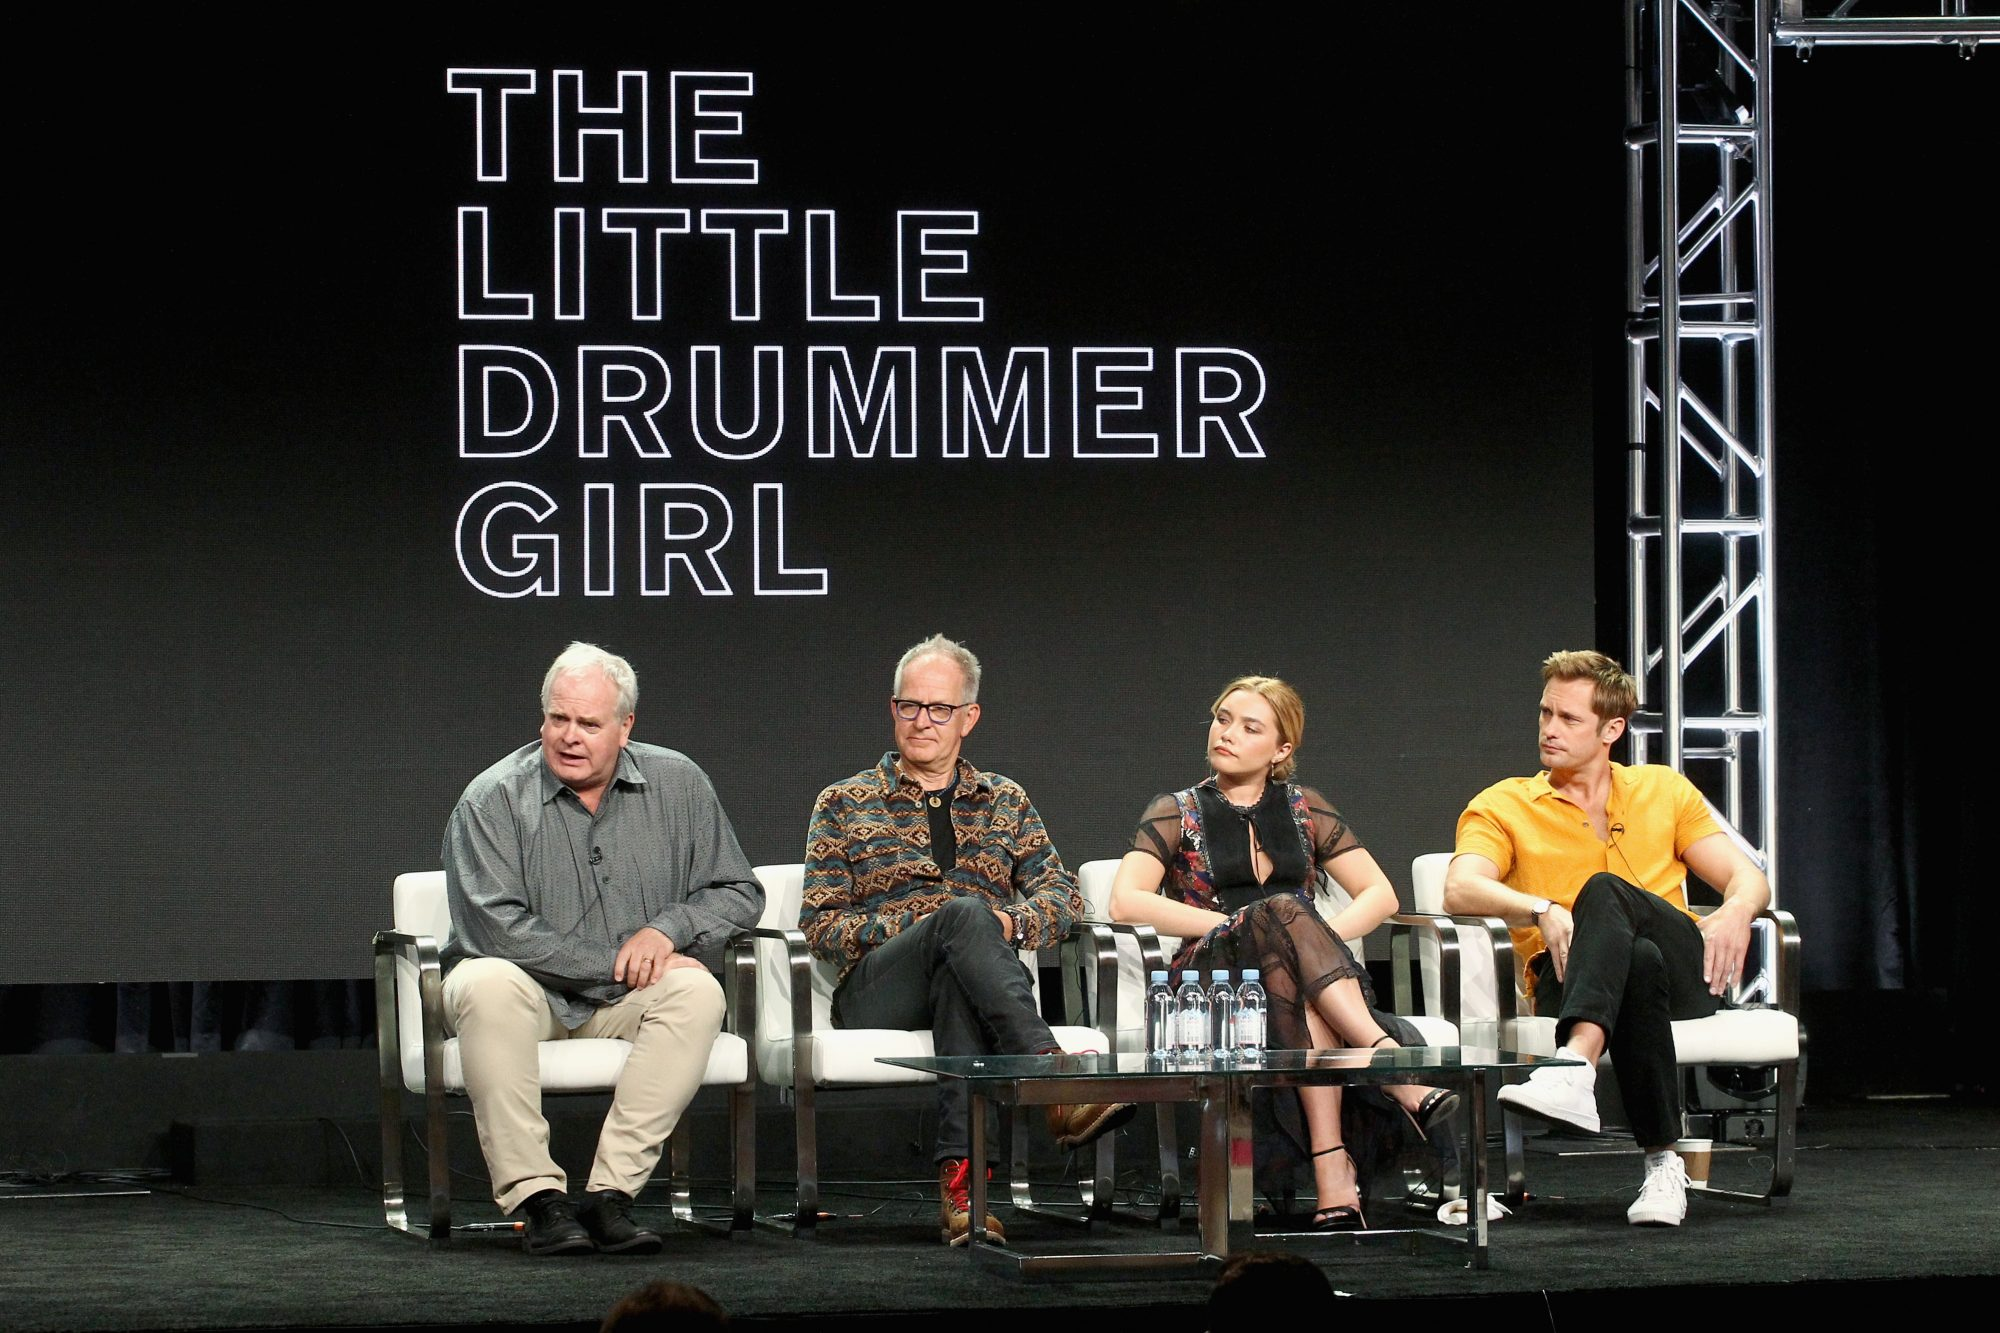 Actors discuss Tv series The Little Drummer girl